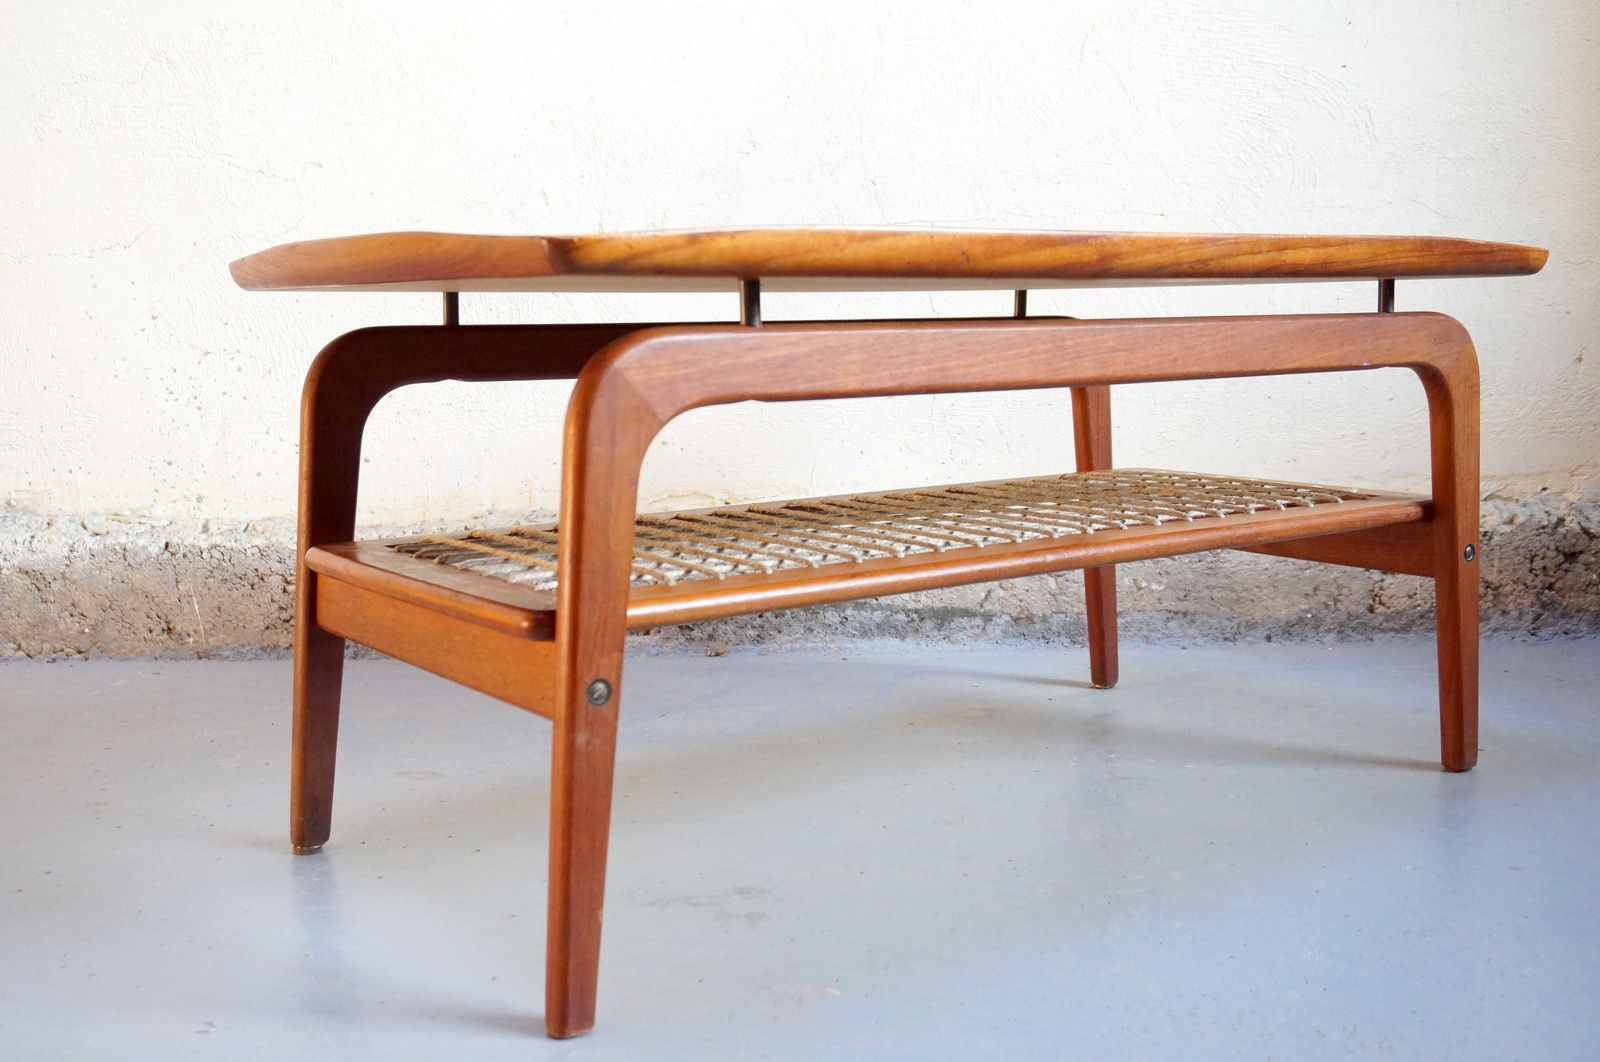 Vendu table basse scandinave danois design teck vintage - Table de salon en teck occasion ...